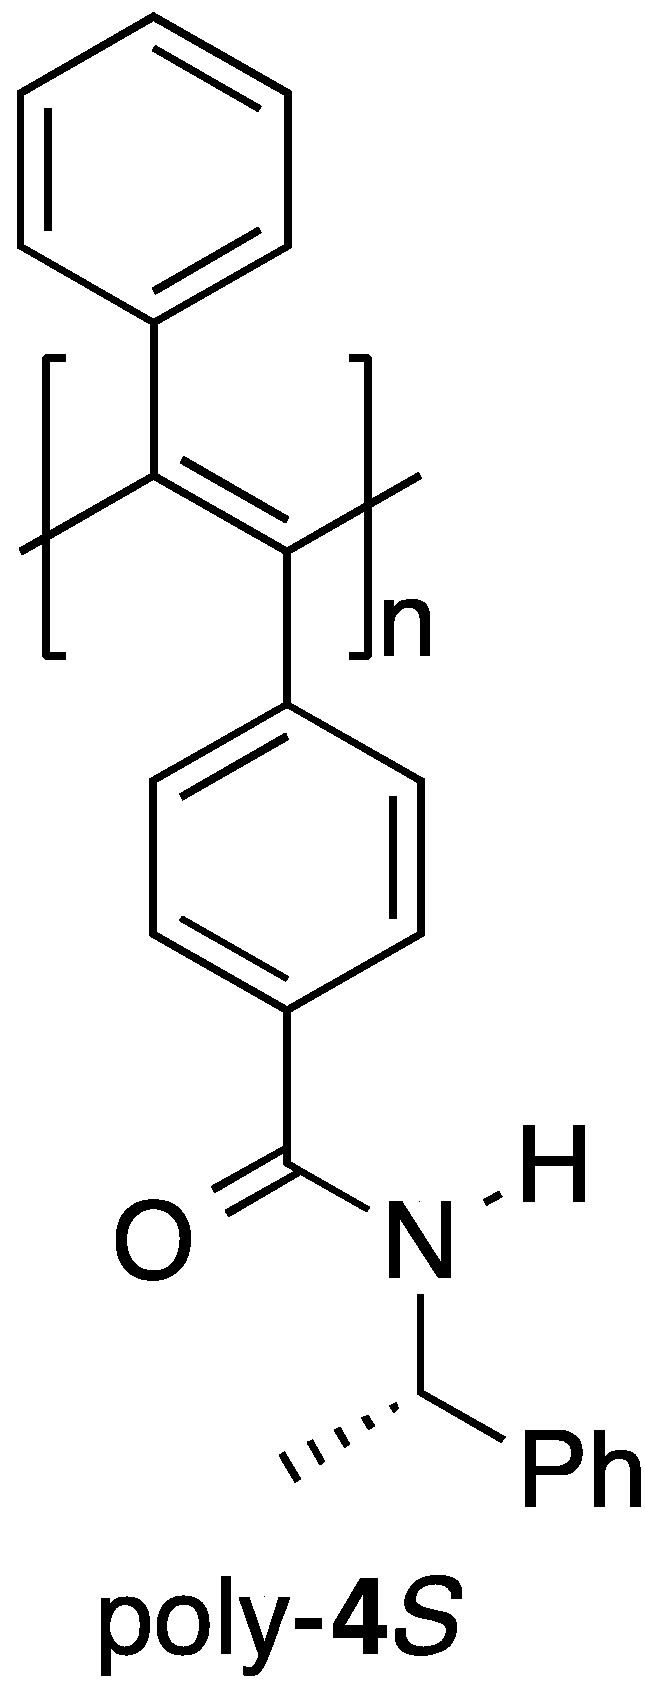 synthesis of diphenylacetylene Diels-alder reaction: synthesis of hexaphenylbenzene adapted from fieser, lf in organic syntheses, coll from the chemicals hood: from the stockroom (blue bin): diphenylacetylene benzophenone diphenyl ether toluene ½ pea-sized stirbar stirbar retriever 25 ml round-bottom flask.